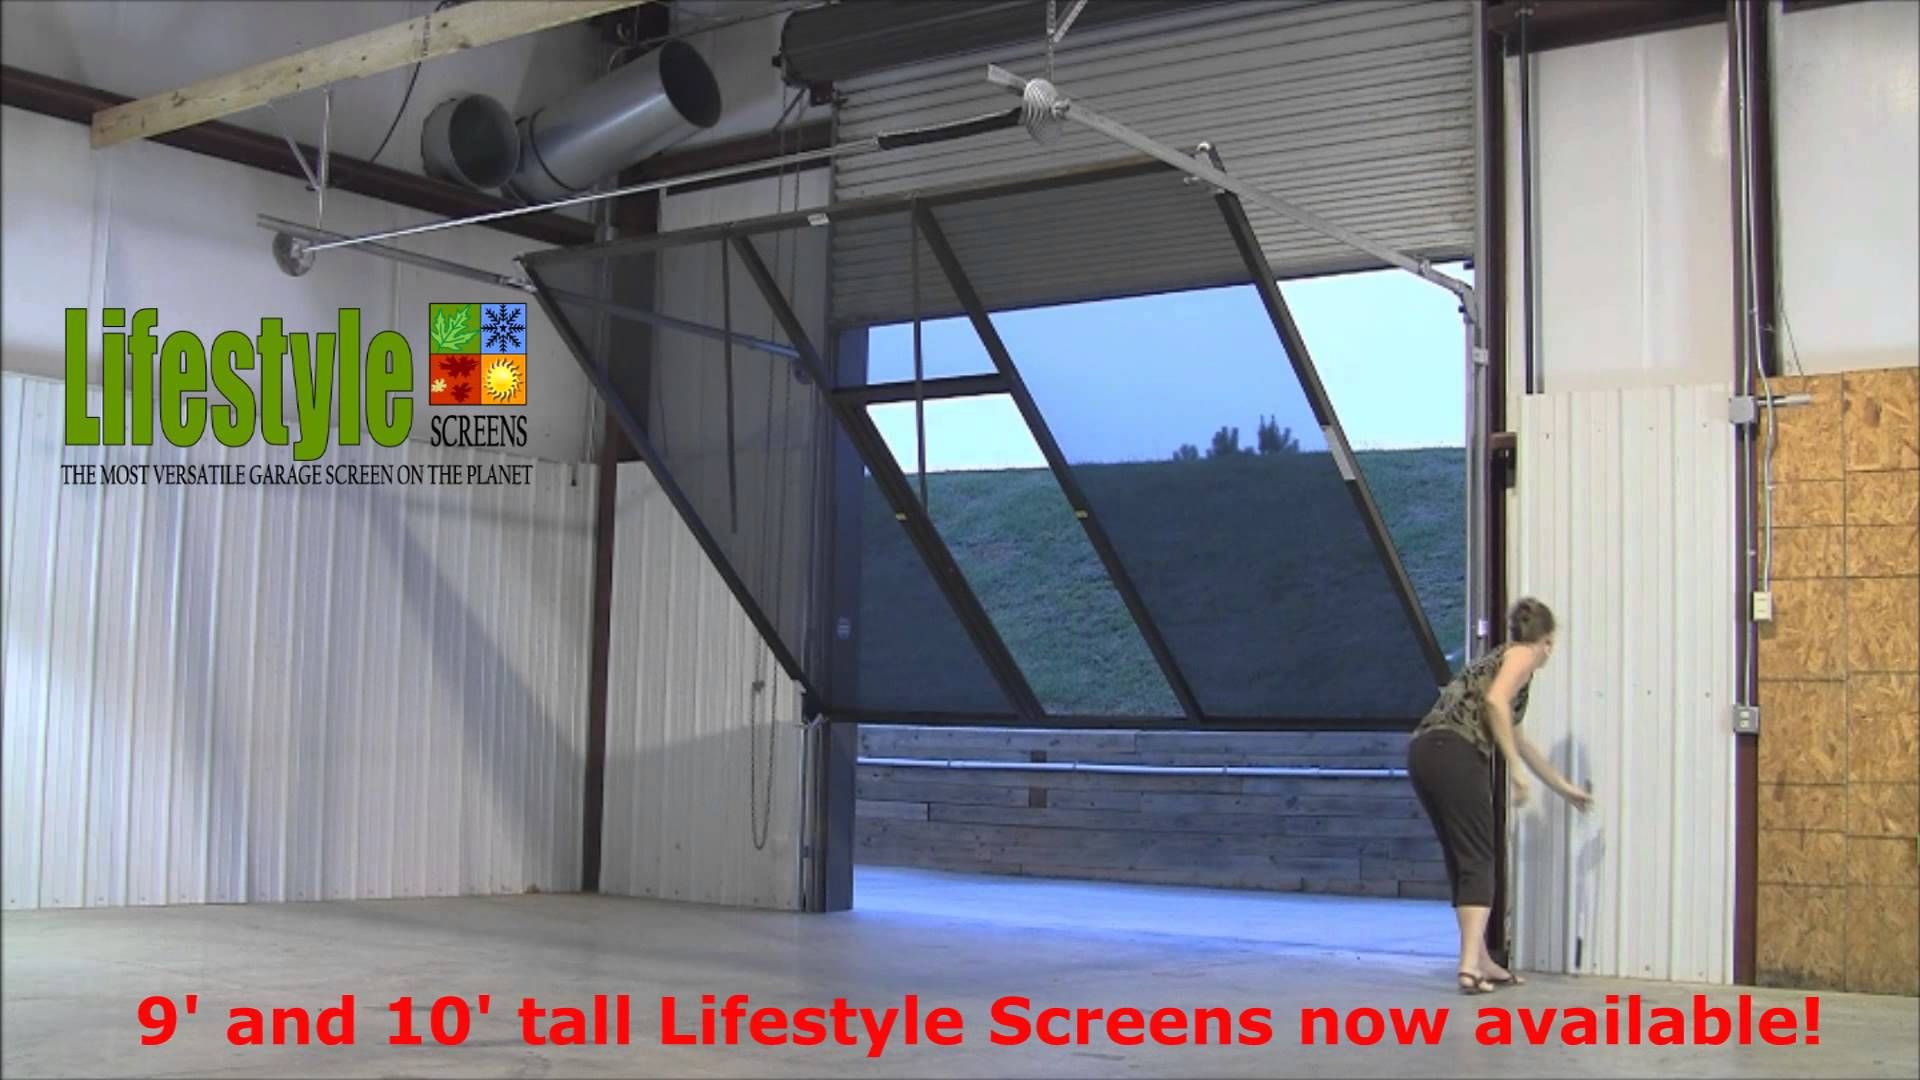 Lifestyle screens adds 9h and 10h garage door screen 01 lifestyle screens adds 9h and 10h garage door screen rubansaba